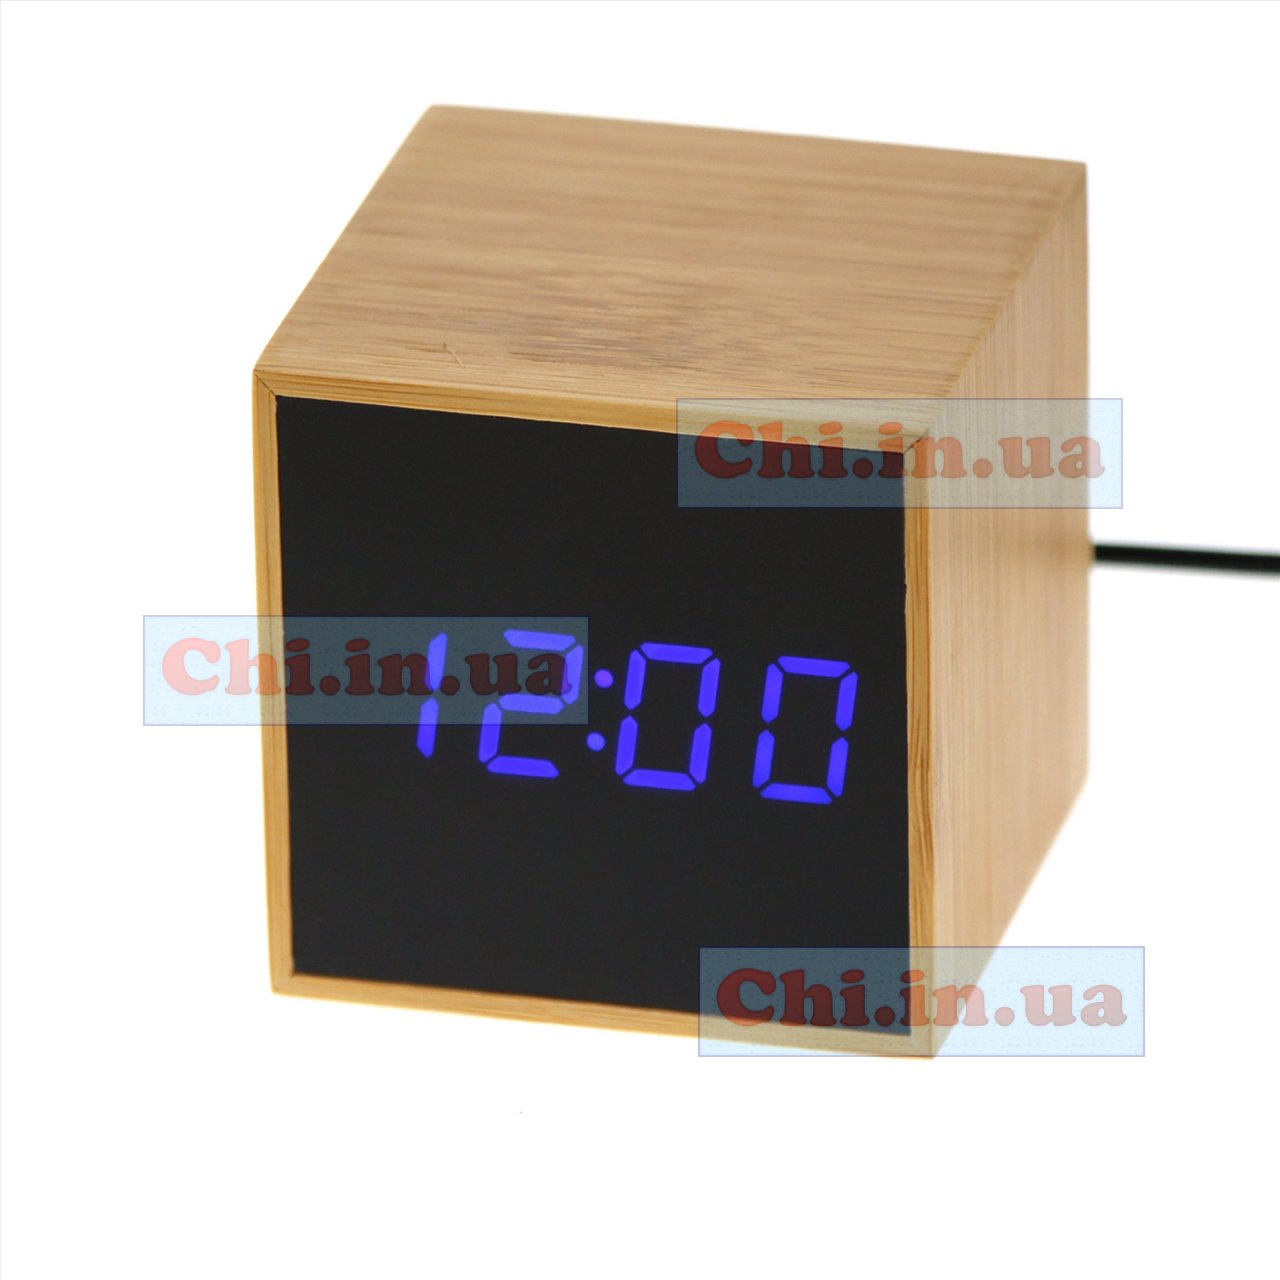 bamboo led clock TS-M01 blue